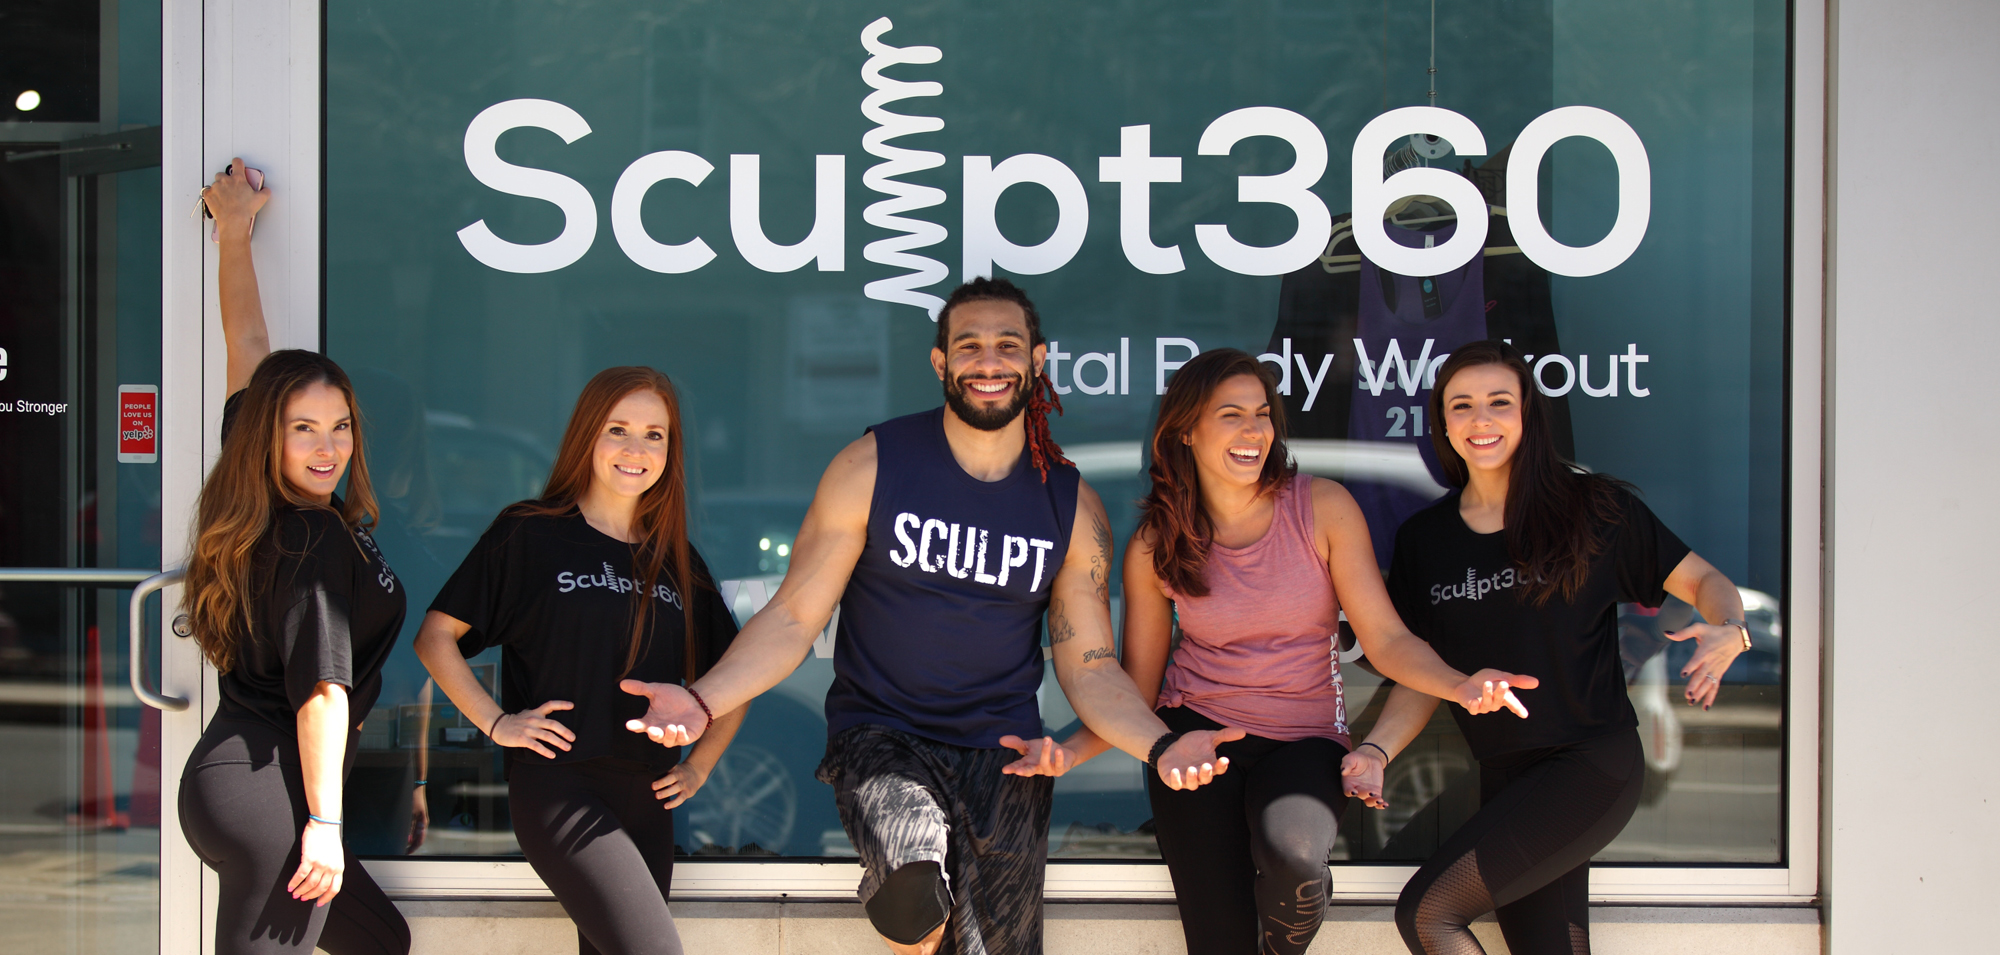 sculpt360 team in front of their fitness studio